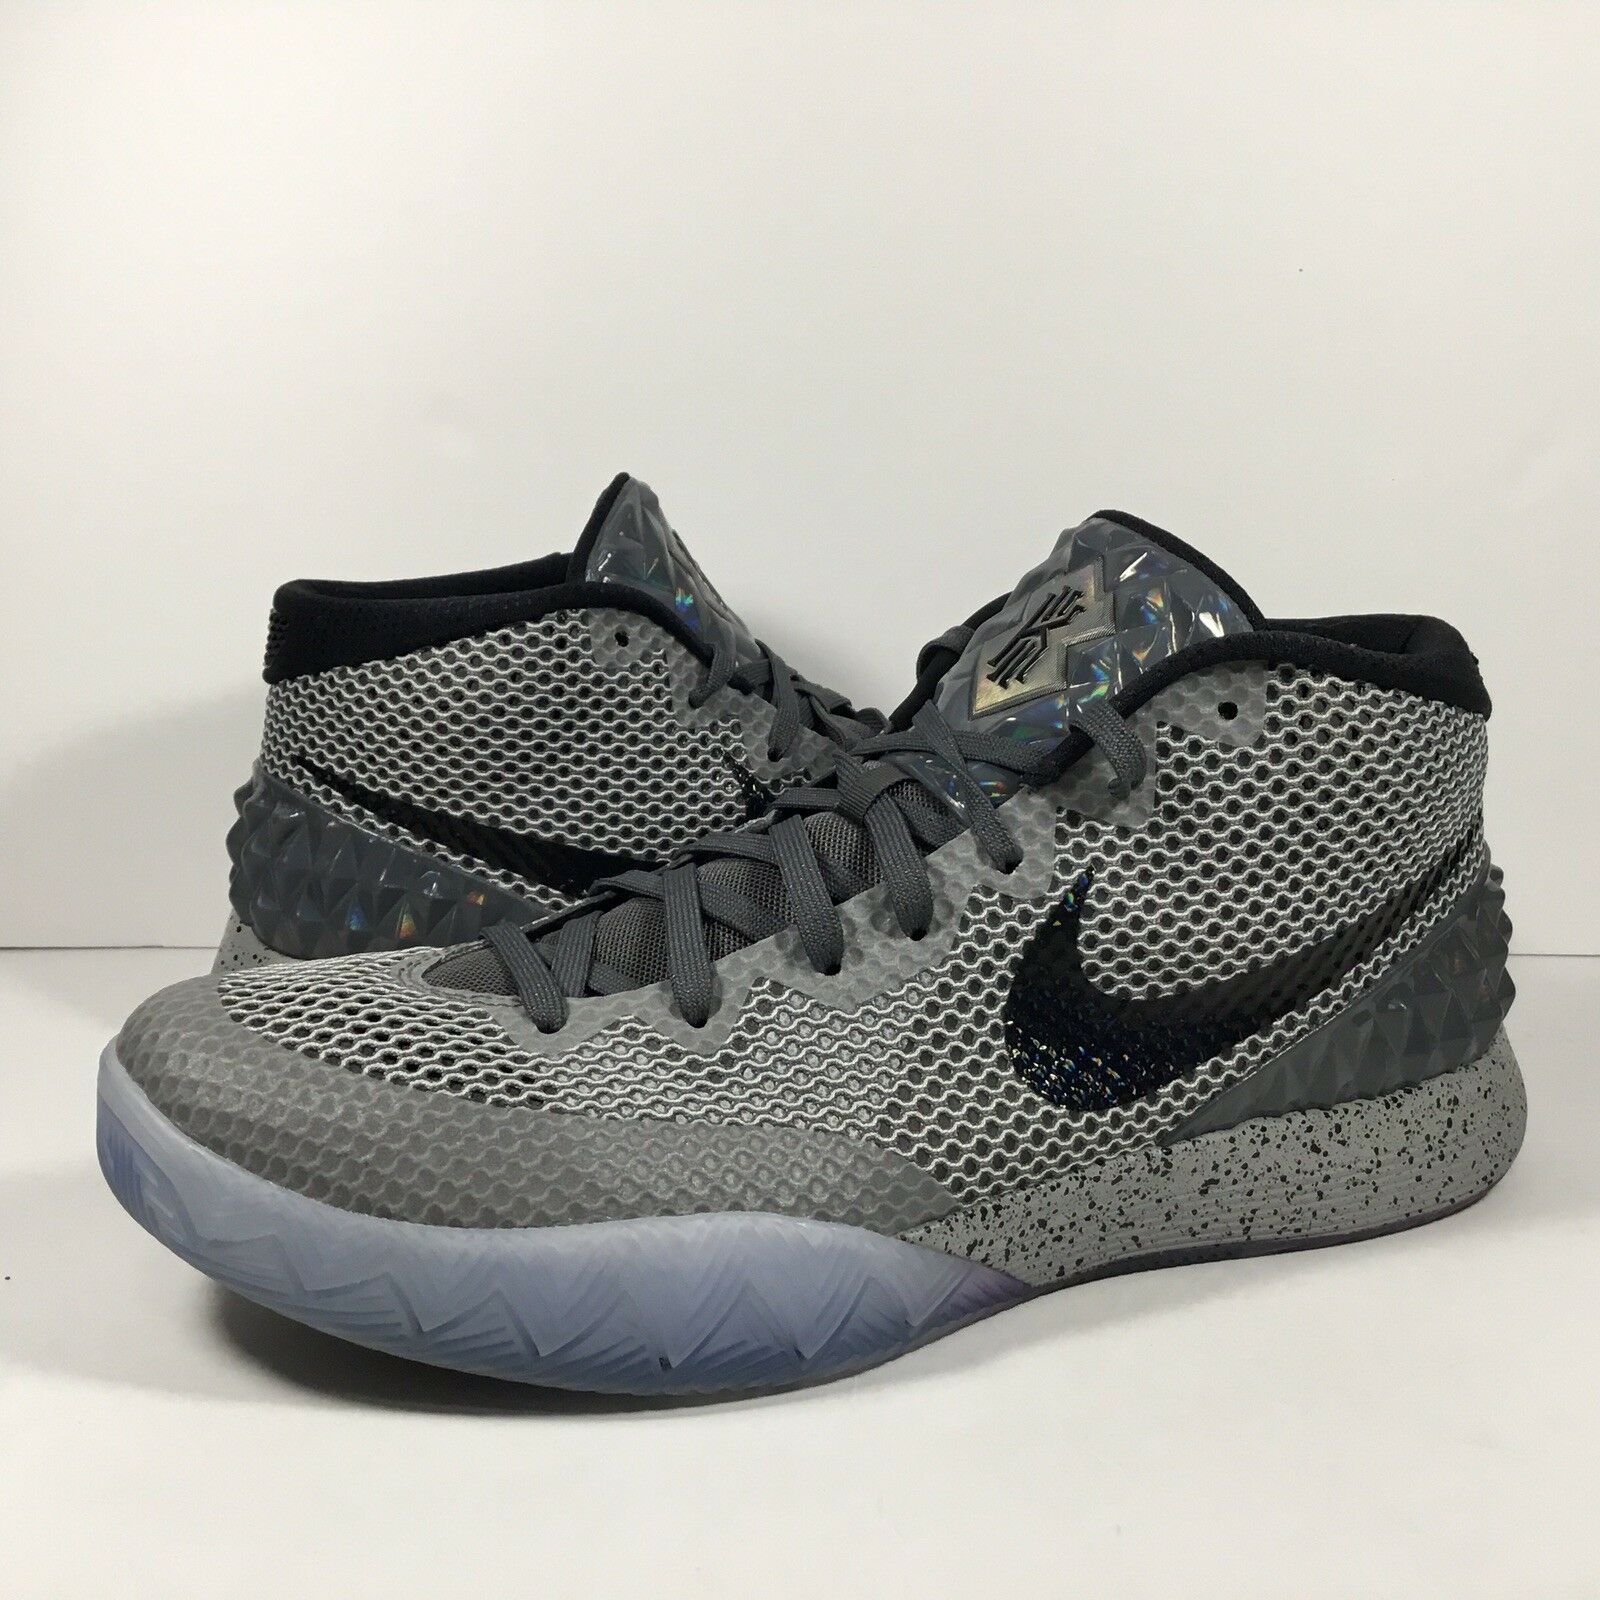 Nike Kyrie 1 All Star ASG